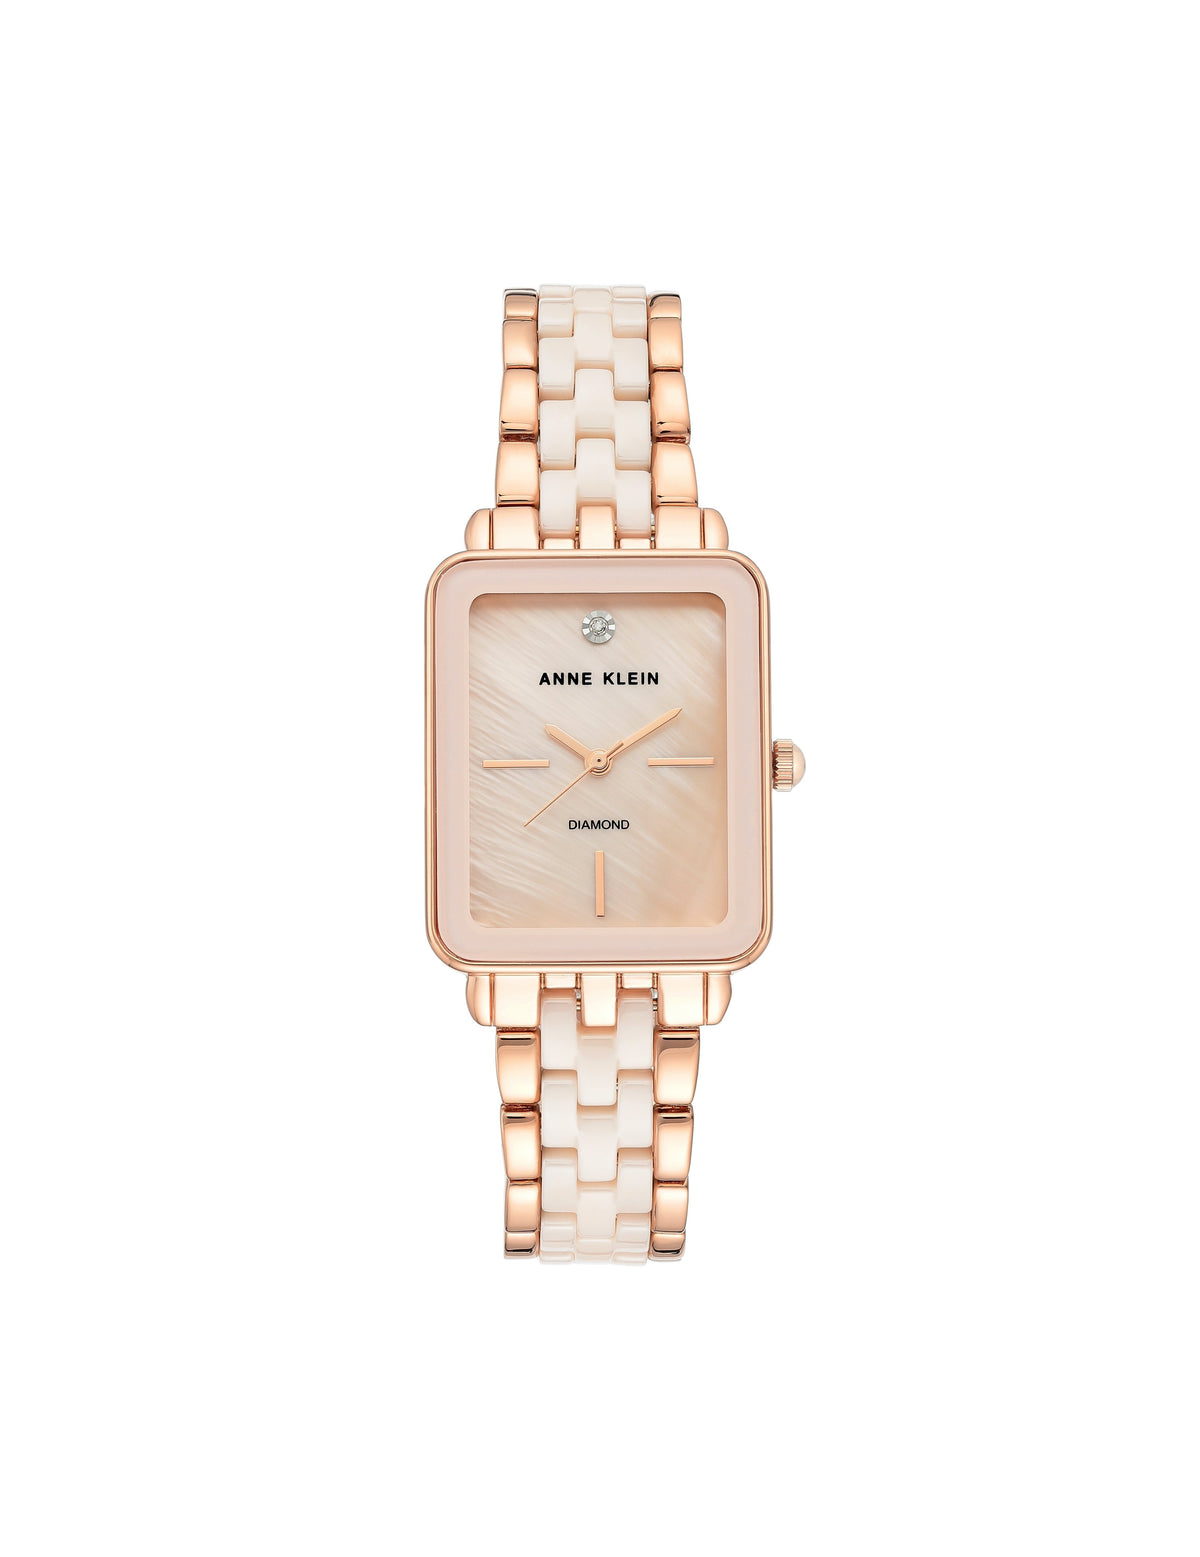 light pink rose gold genuine diamond dial ceramic bracelet watch rectangular case